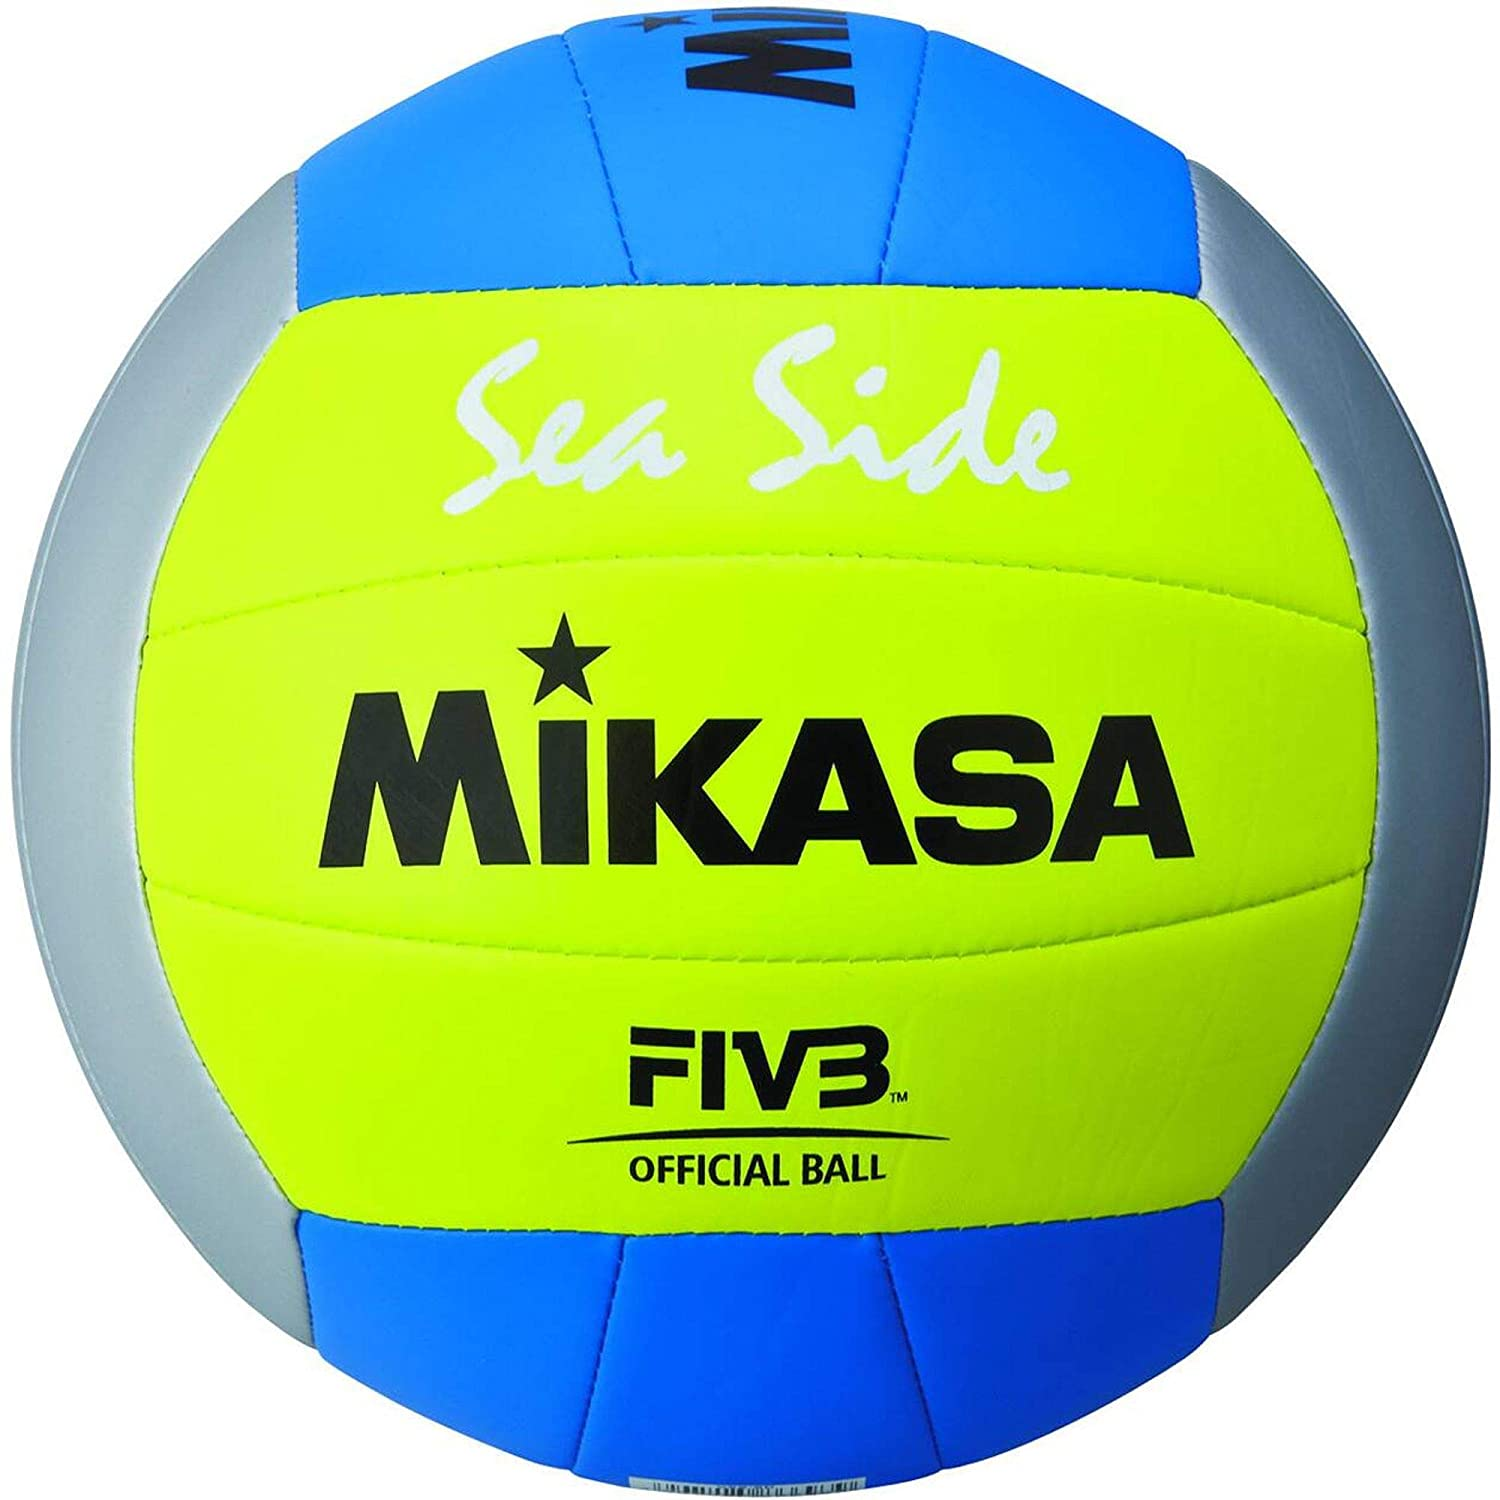 Mikasa Beach Voleibol AL-1679 Beach Voleibol, Amarillo, 5: Amazon ...